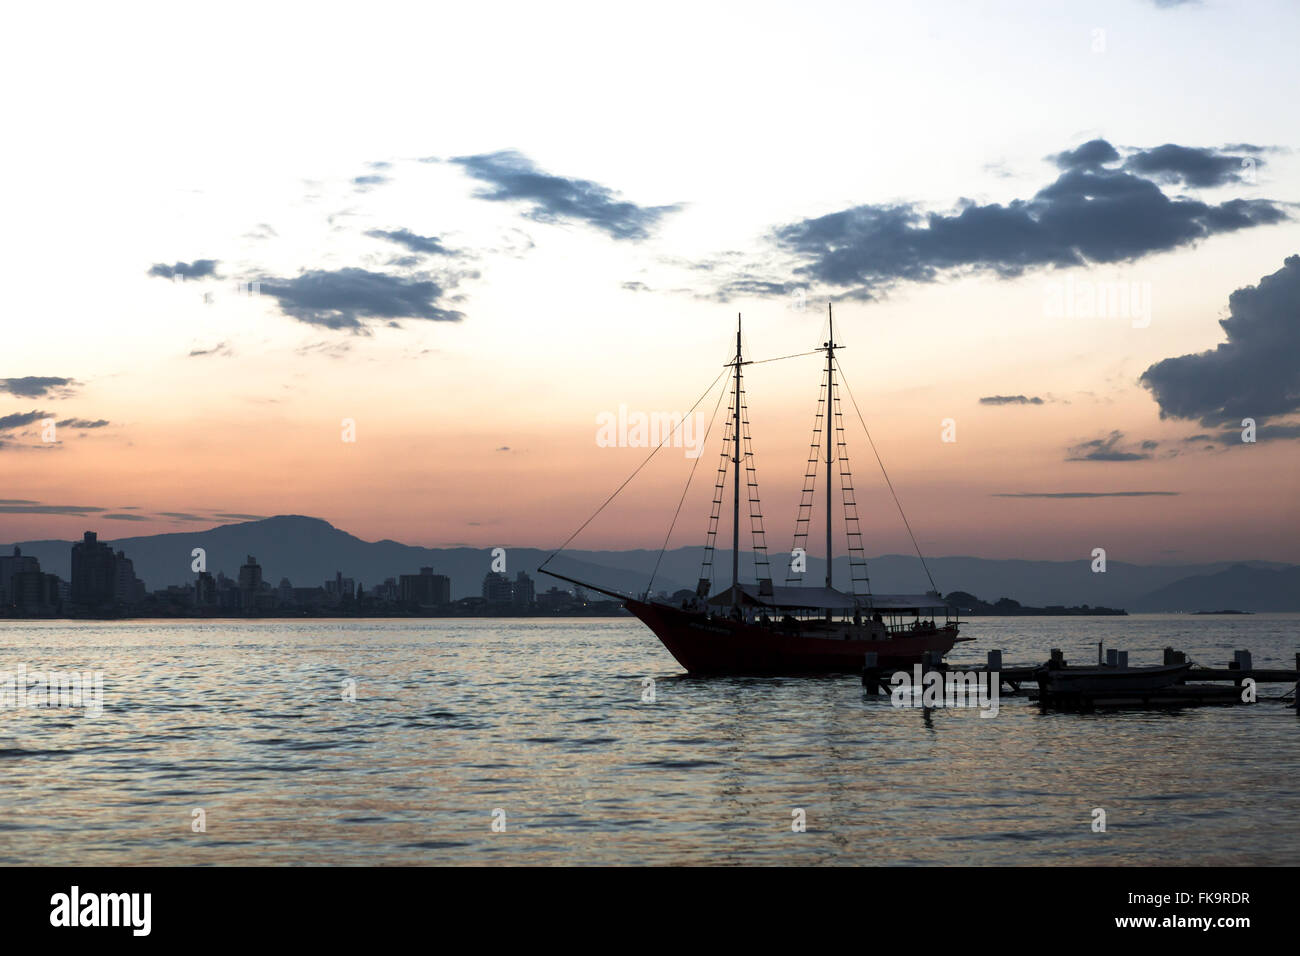 View of the sunset with schooner anchored on the beach - Stock Image